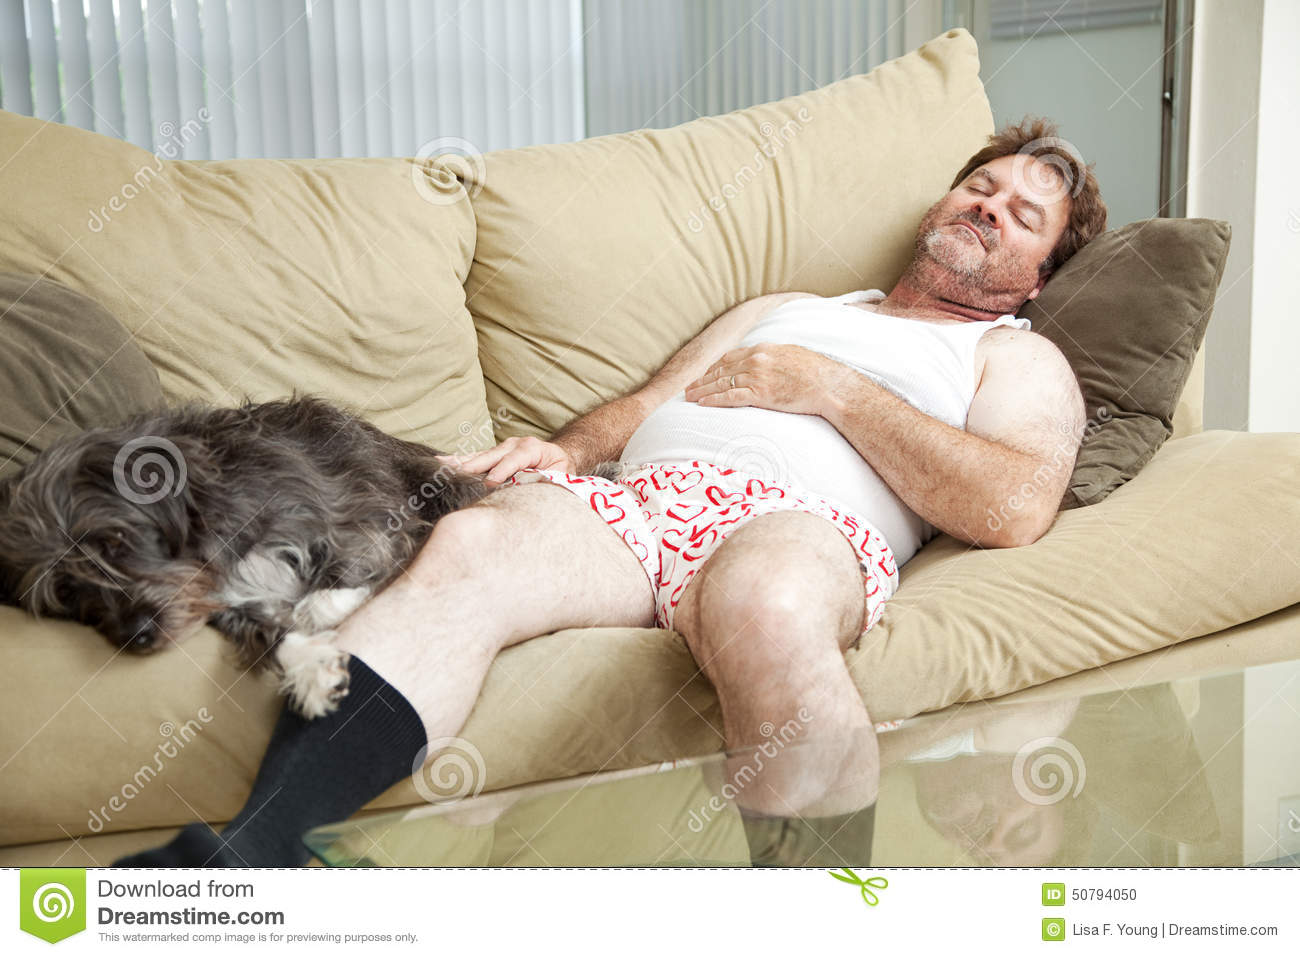 Man Asleep with His Dog